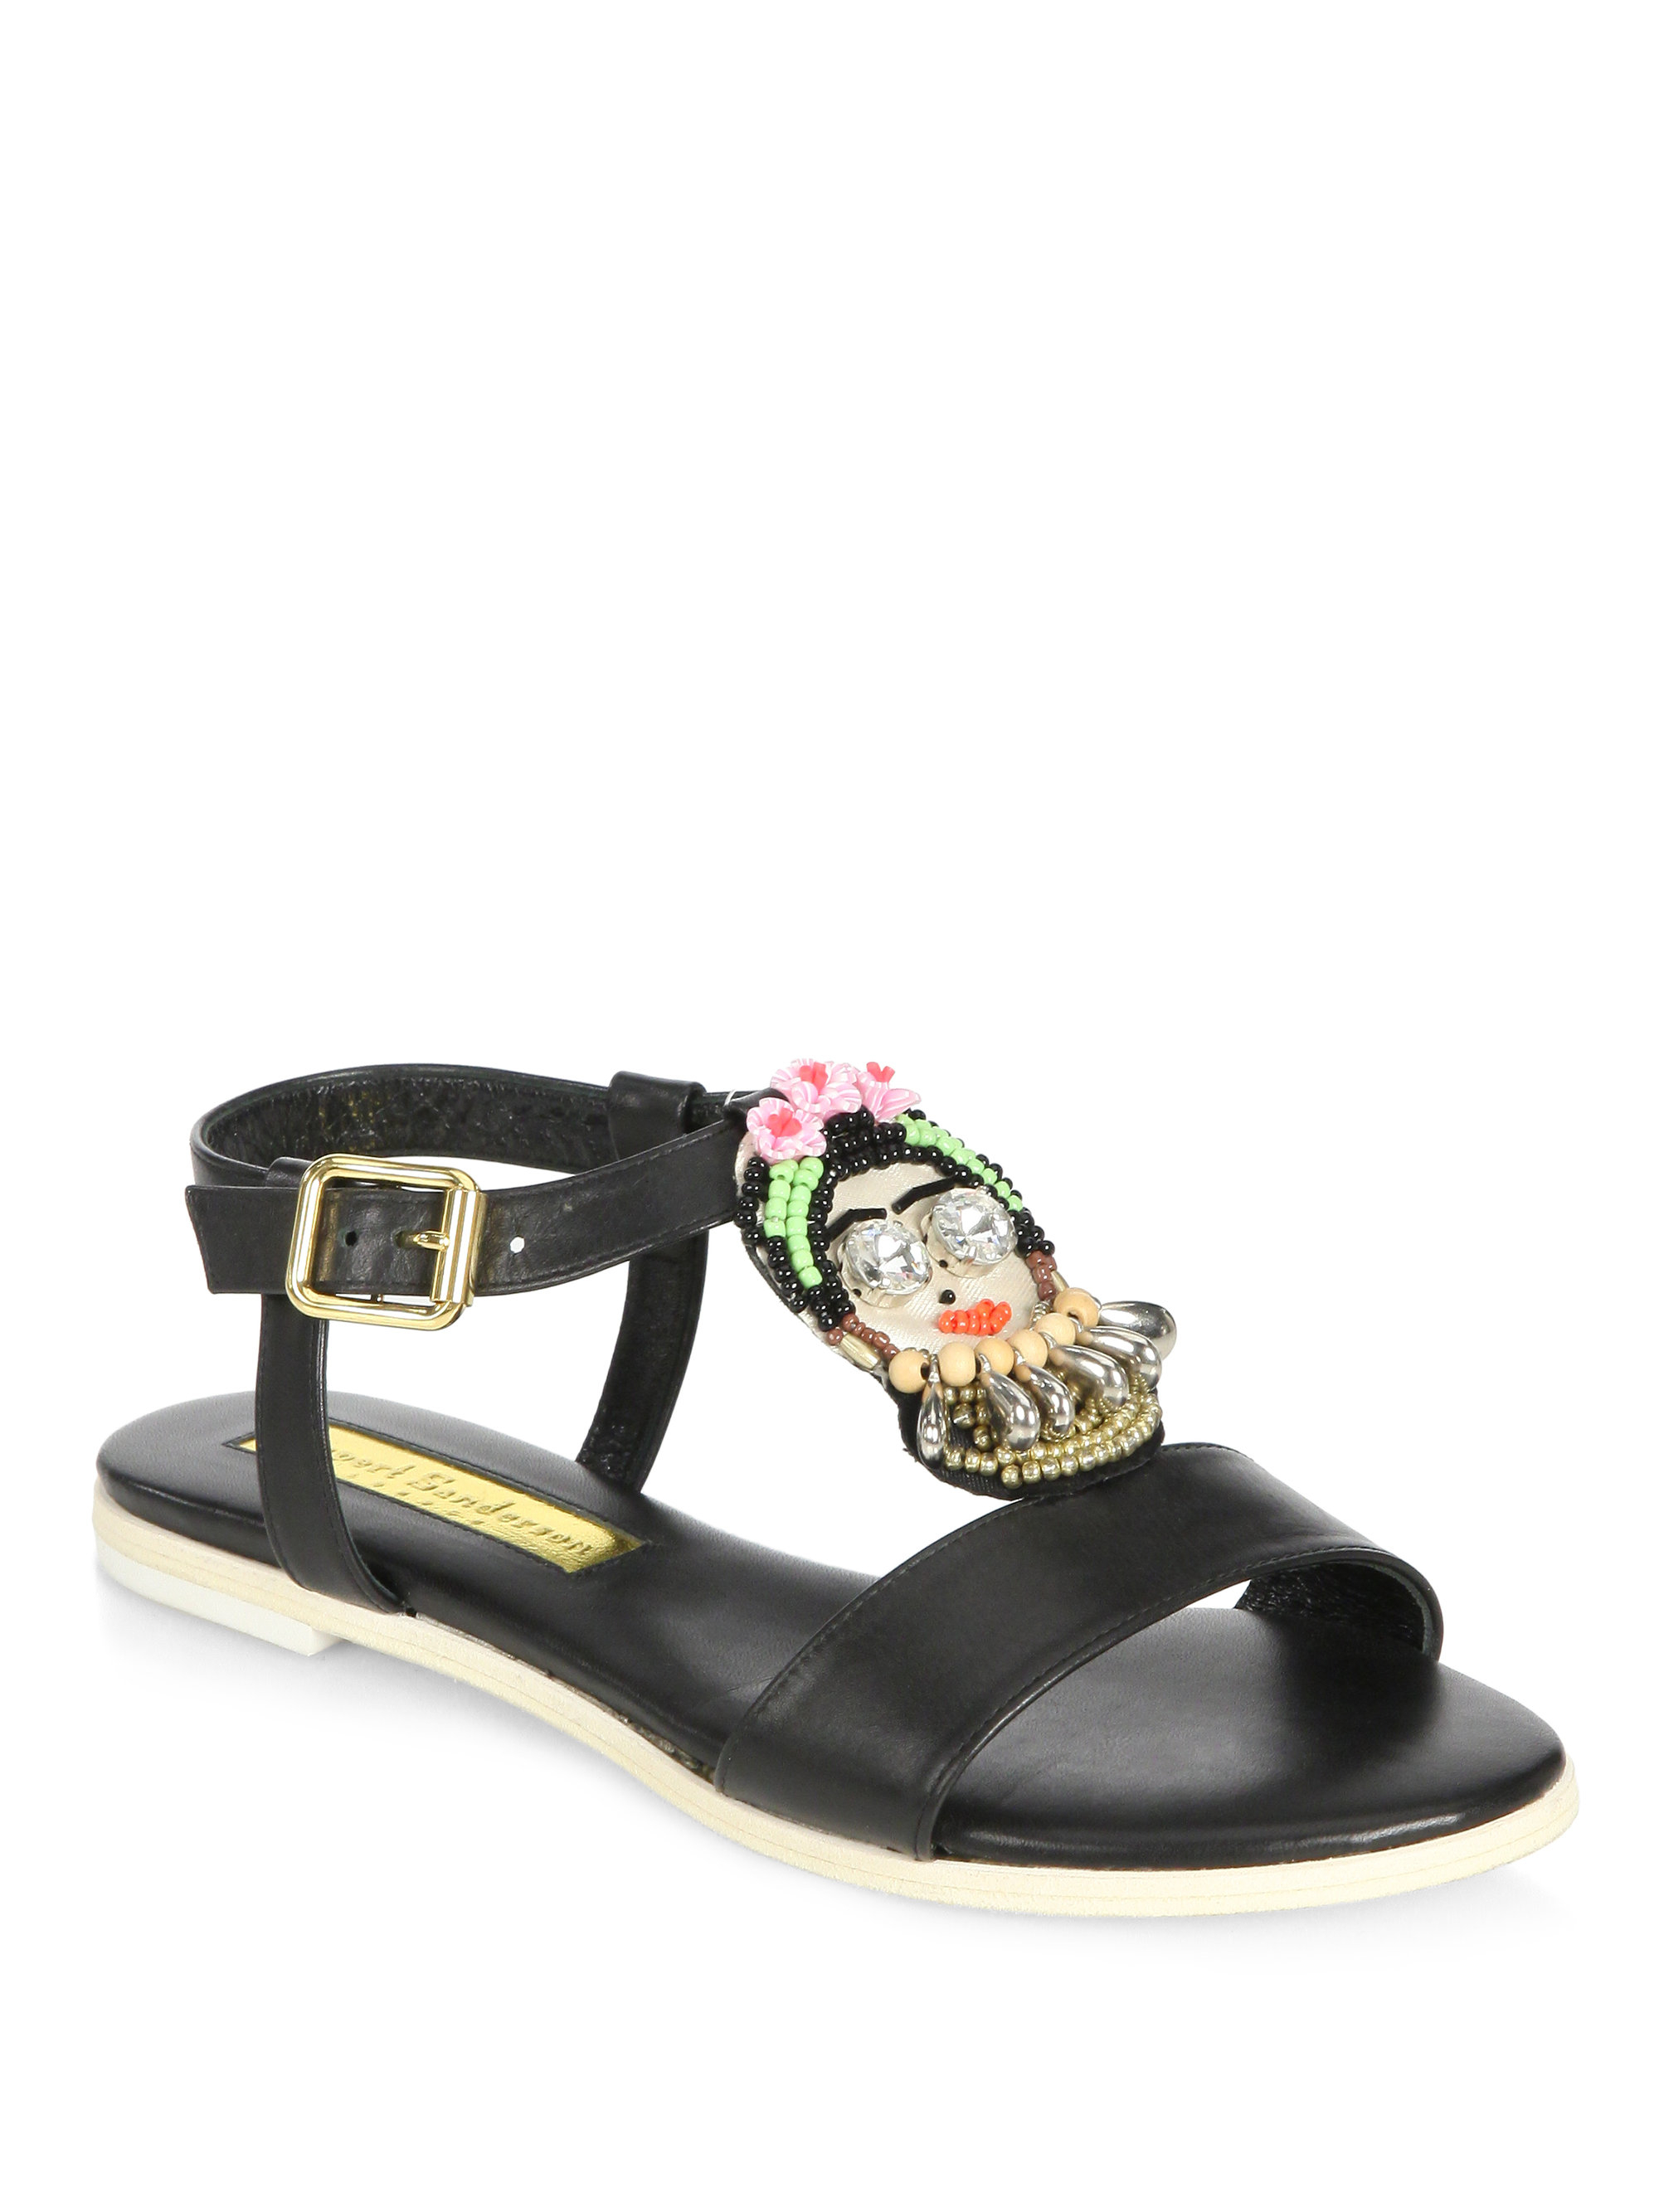 9ce0f52db5fd rupert-sanderson-black-frida-kahlo-beaded-sandals -product-1-27082690-0-779171625-normal.jpeg